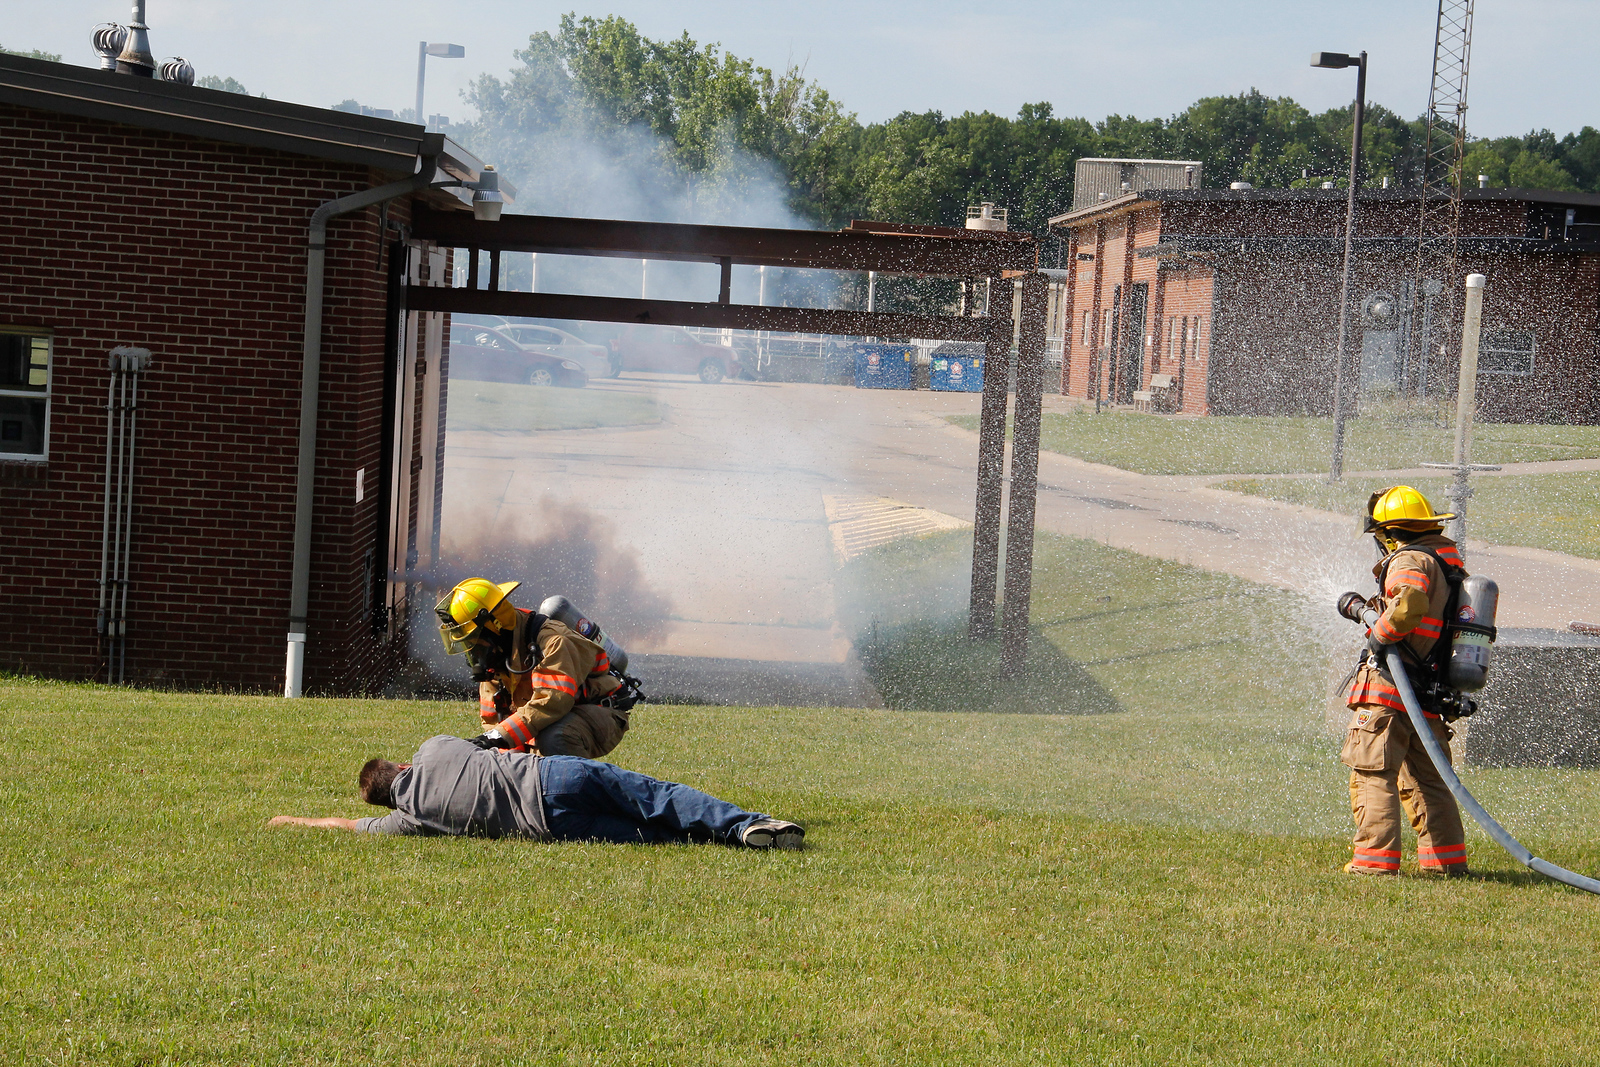 ALEC SMITH / GAZETTE Valley City Fire Department officials in Liverpool Township work Saturday on a simulated exercise involving a mock disaster. The event in which workers demonstrated skills in the event of a chlorine release, took place at the Liverpool Waste Water Treatment Plant, 89 Columbia Road. Here is Rob Baldauf from Lodi on the left acting as a victim, being checked by Ian Martin, of Brunswick, from the Valley City Fire Department. Holding the hose at right is Darby Sandor of the Valley City Fire Department .